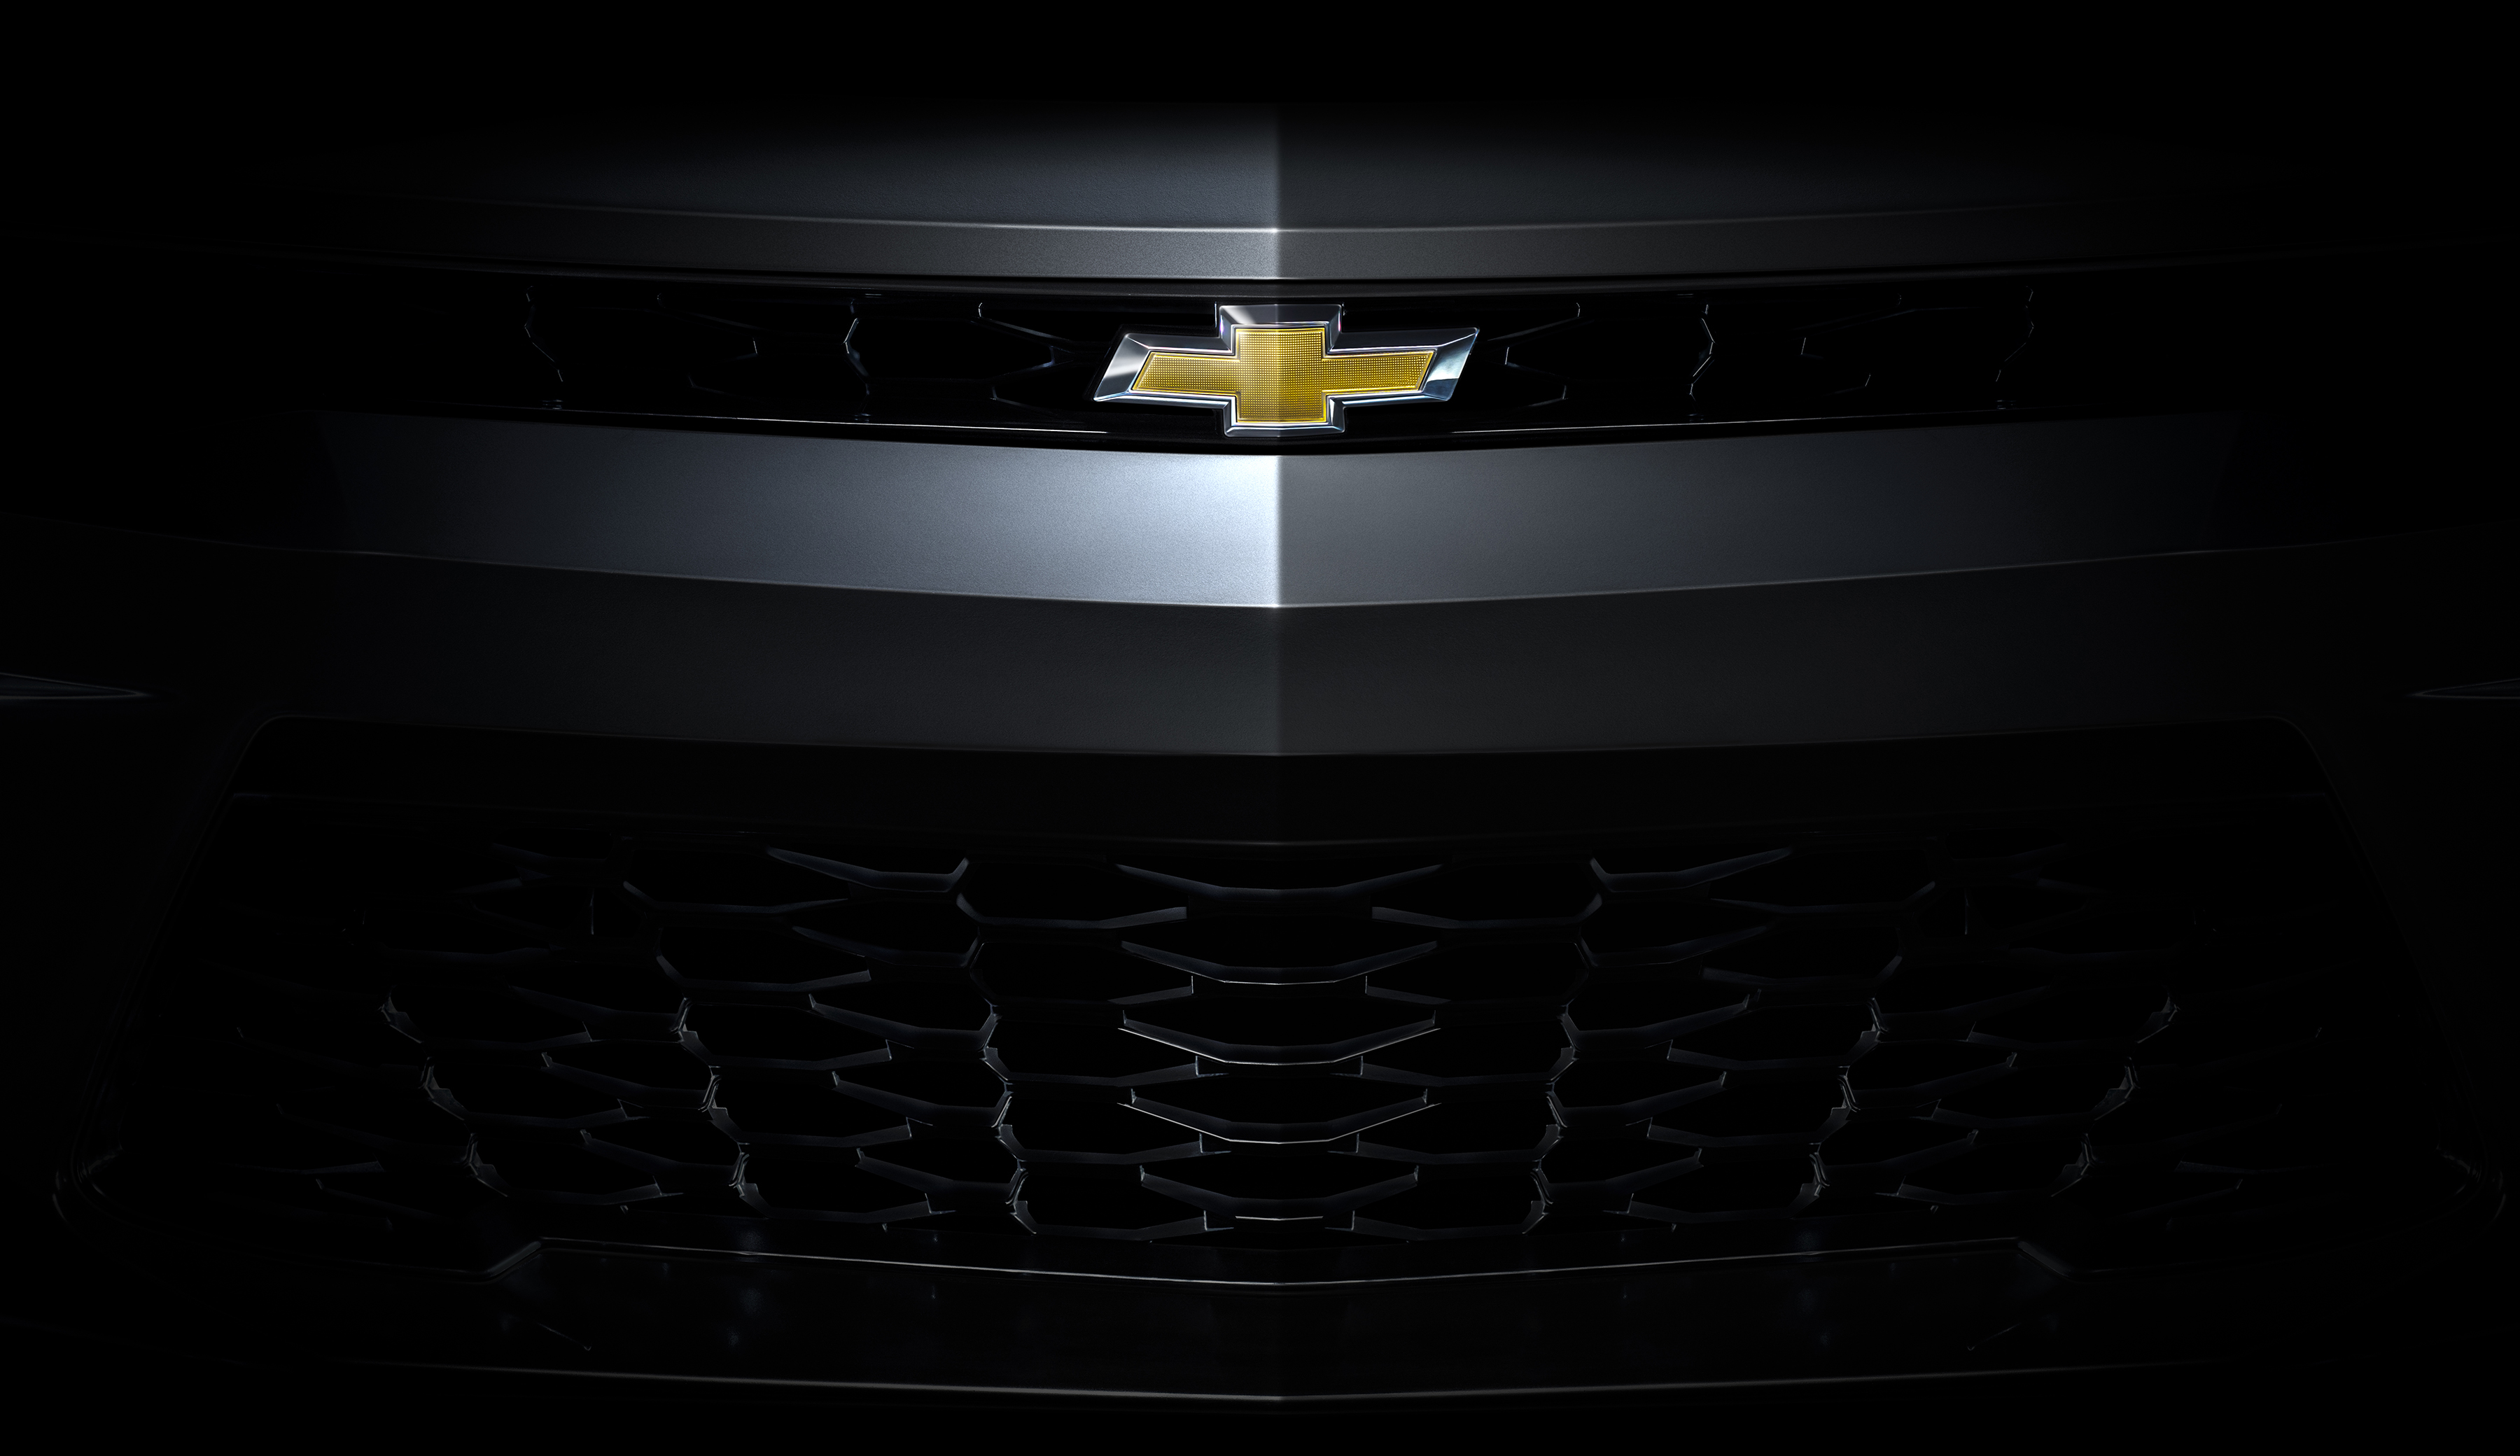 The 2016 Chevrolet Camaro spent 350 hours in the wind tunnel, testing minute changes to improve aerodynamics. For example, the angle of the lower grille was changes from 20 to 13 degrees, to provide a 1-percent improvement engine cooling and maintain the car's sleek design.